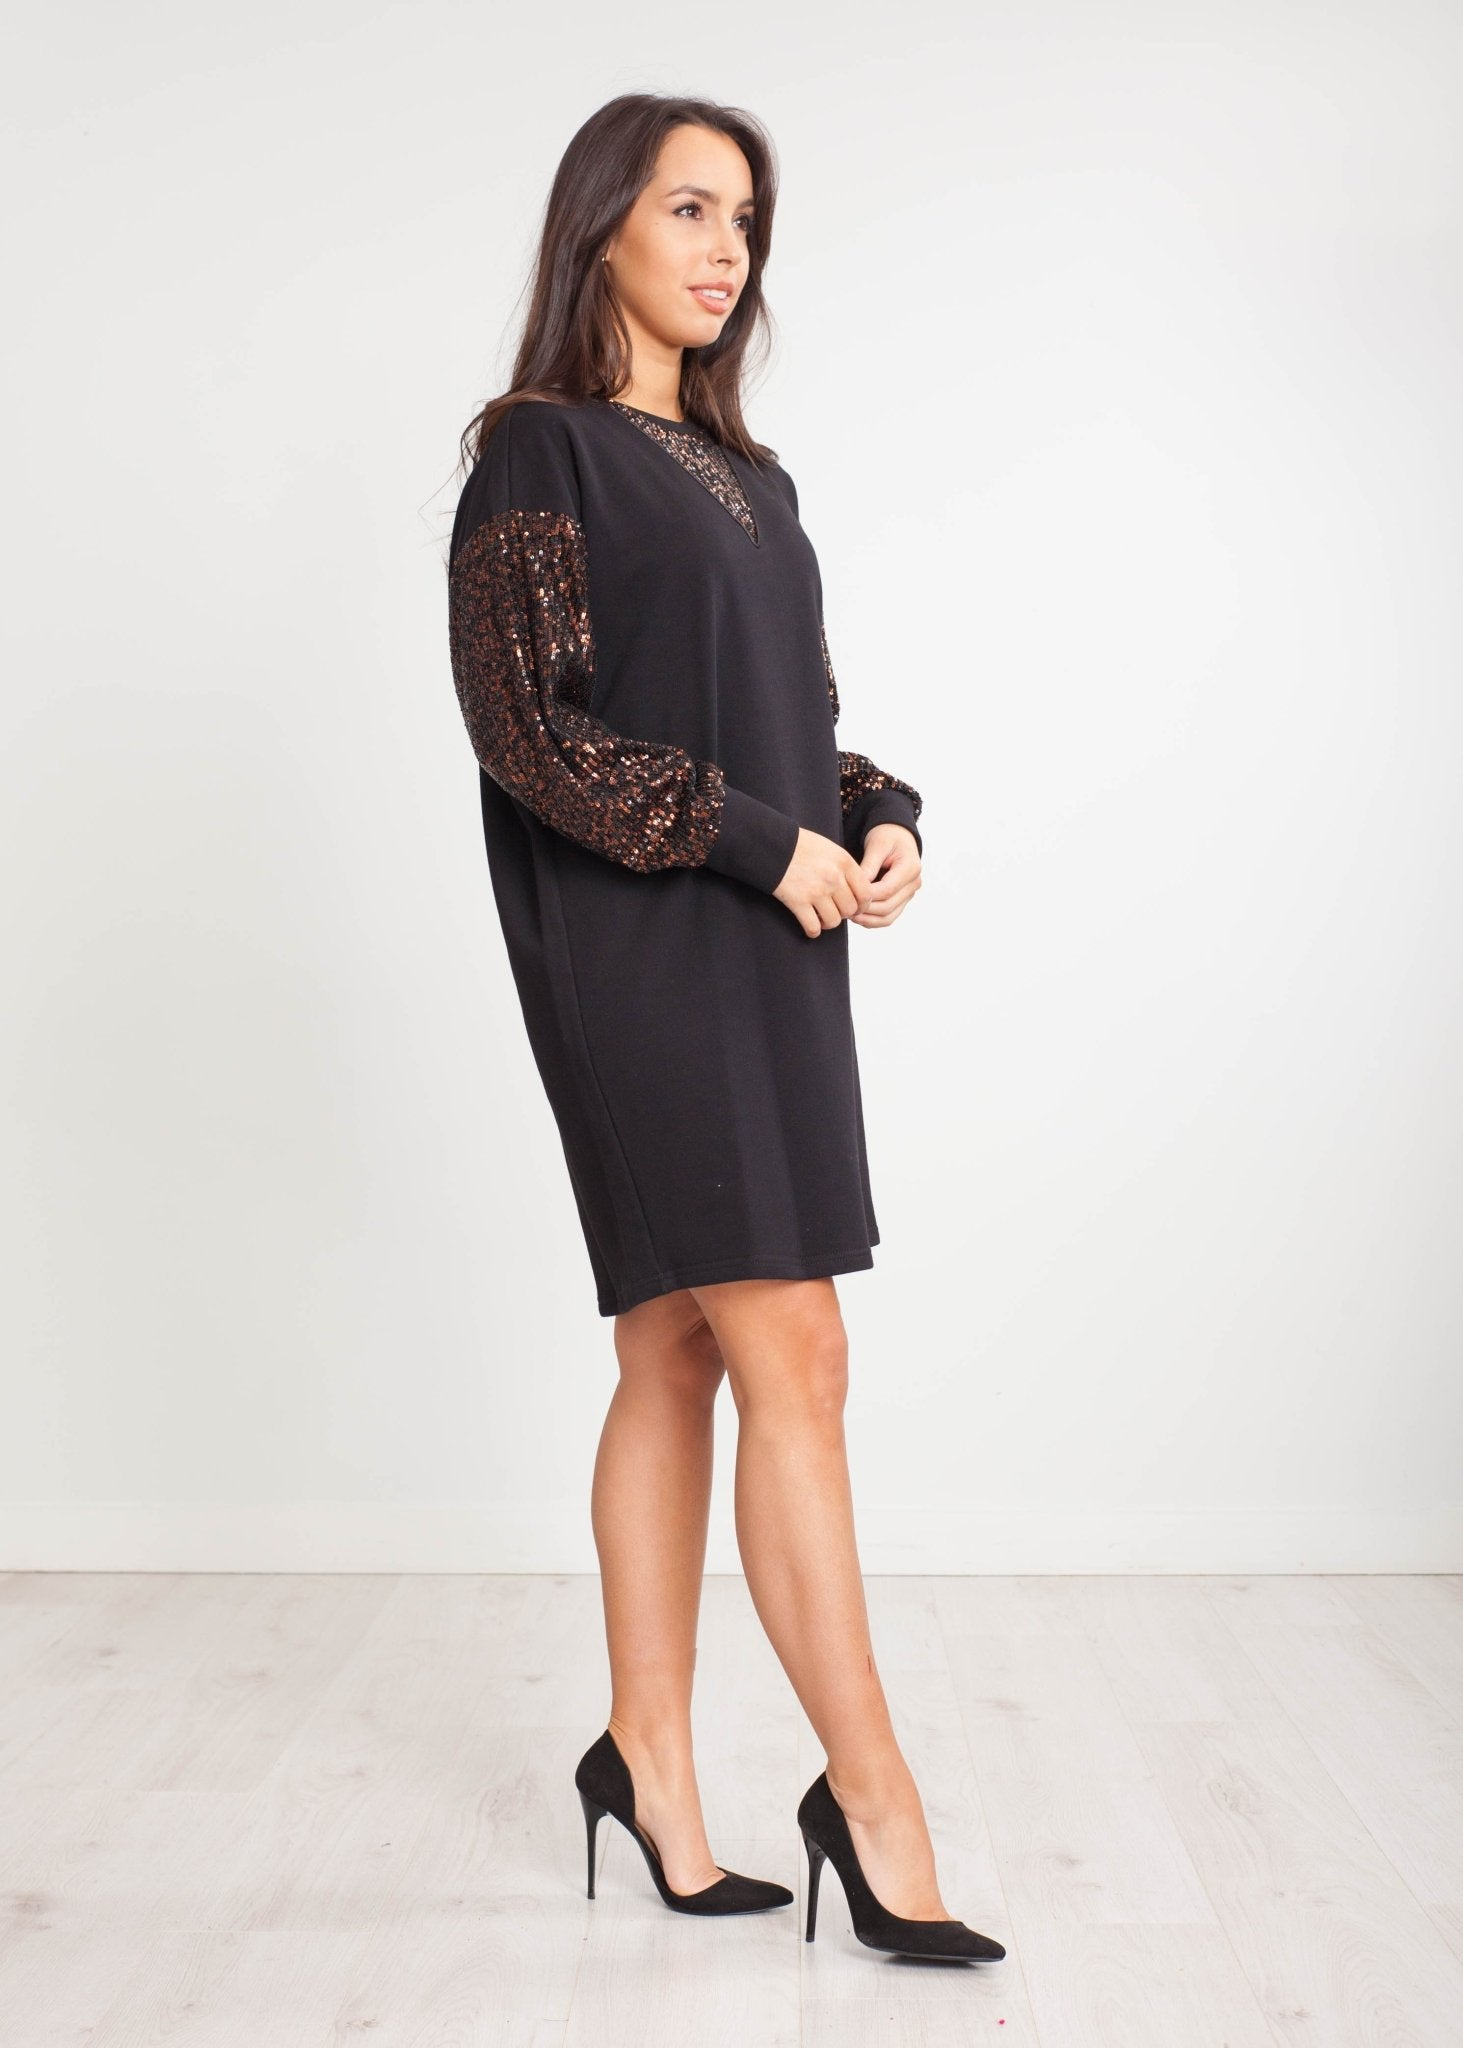 Tina Jumper Dress With Sequins In Black - The Walk in Wardrobe